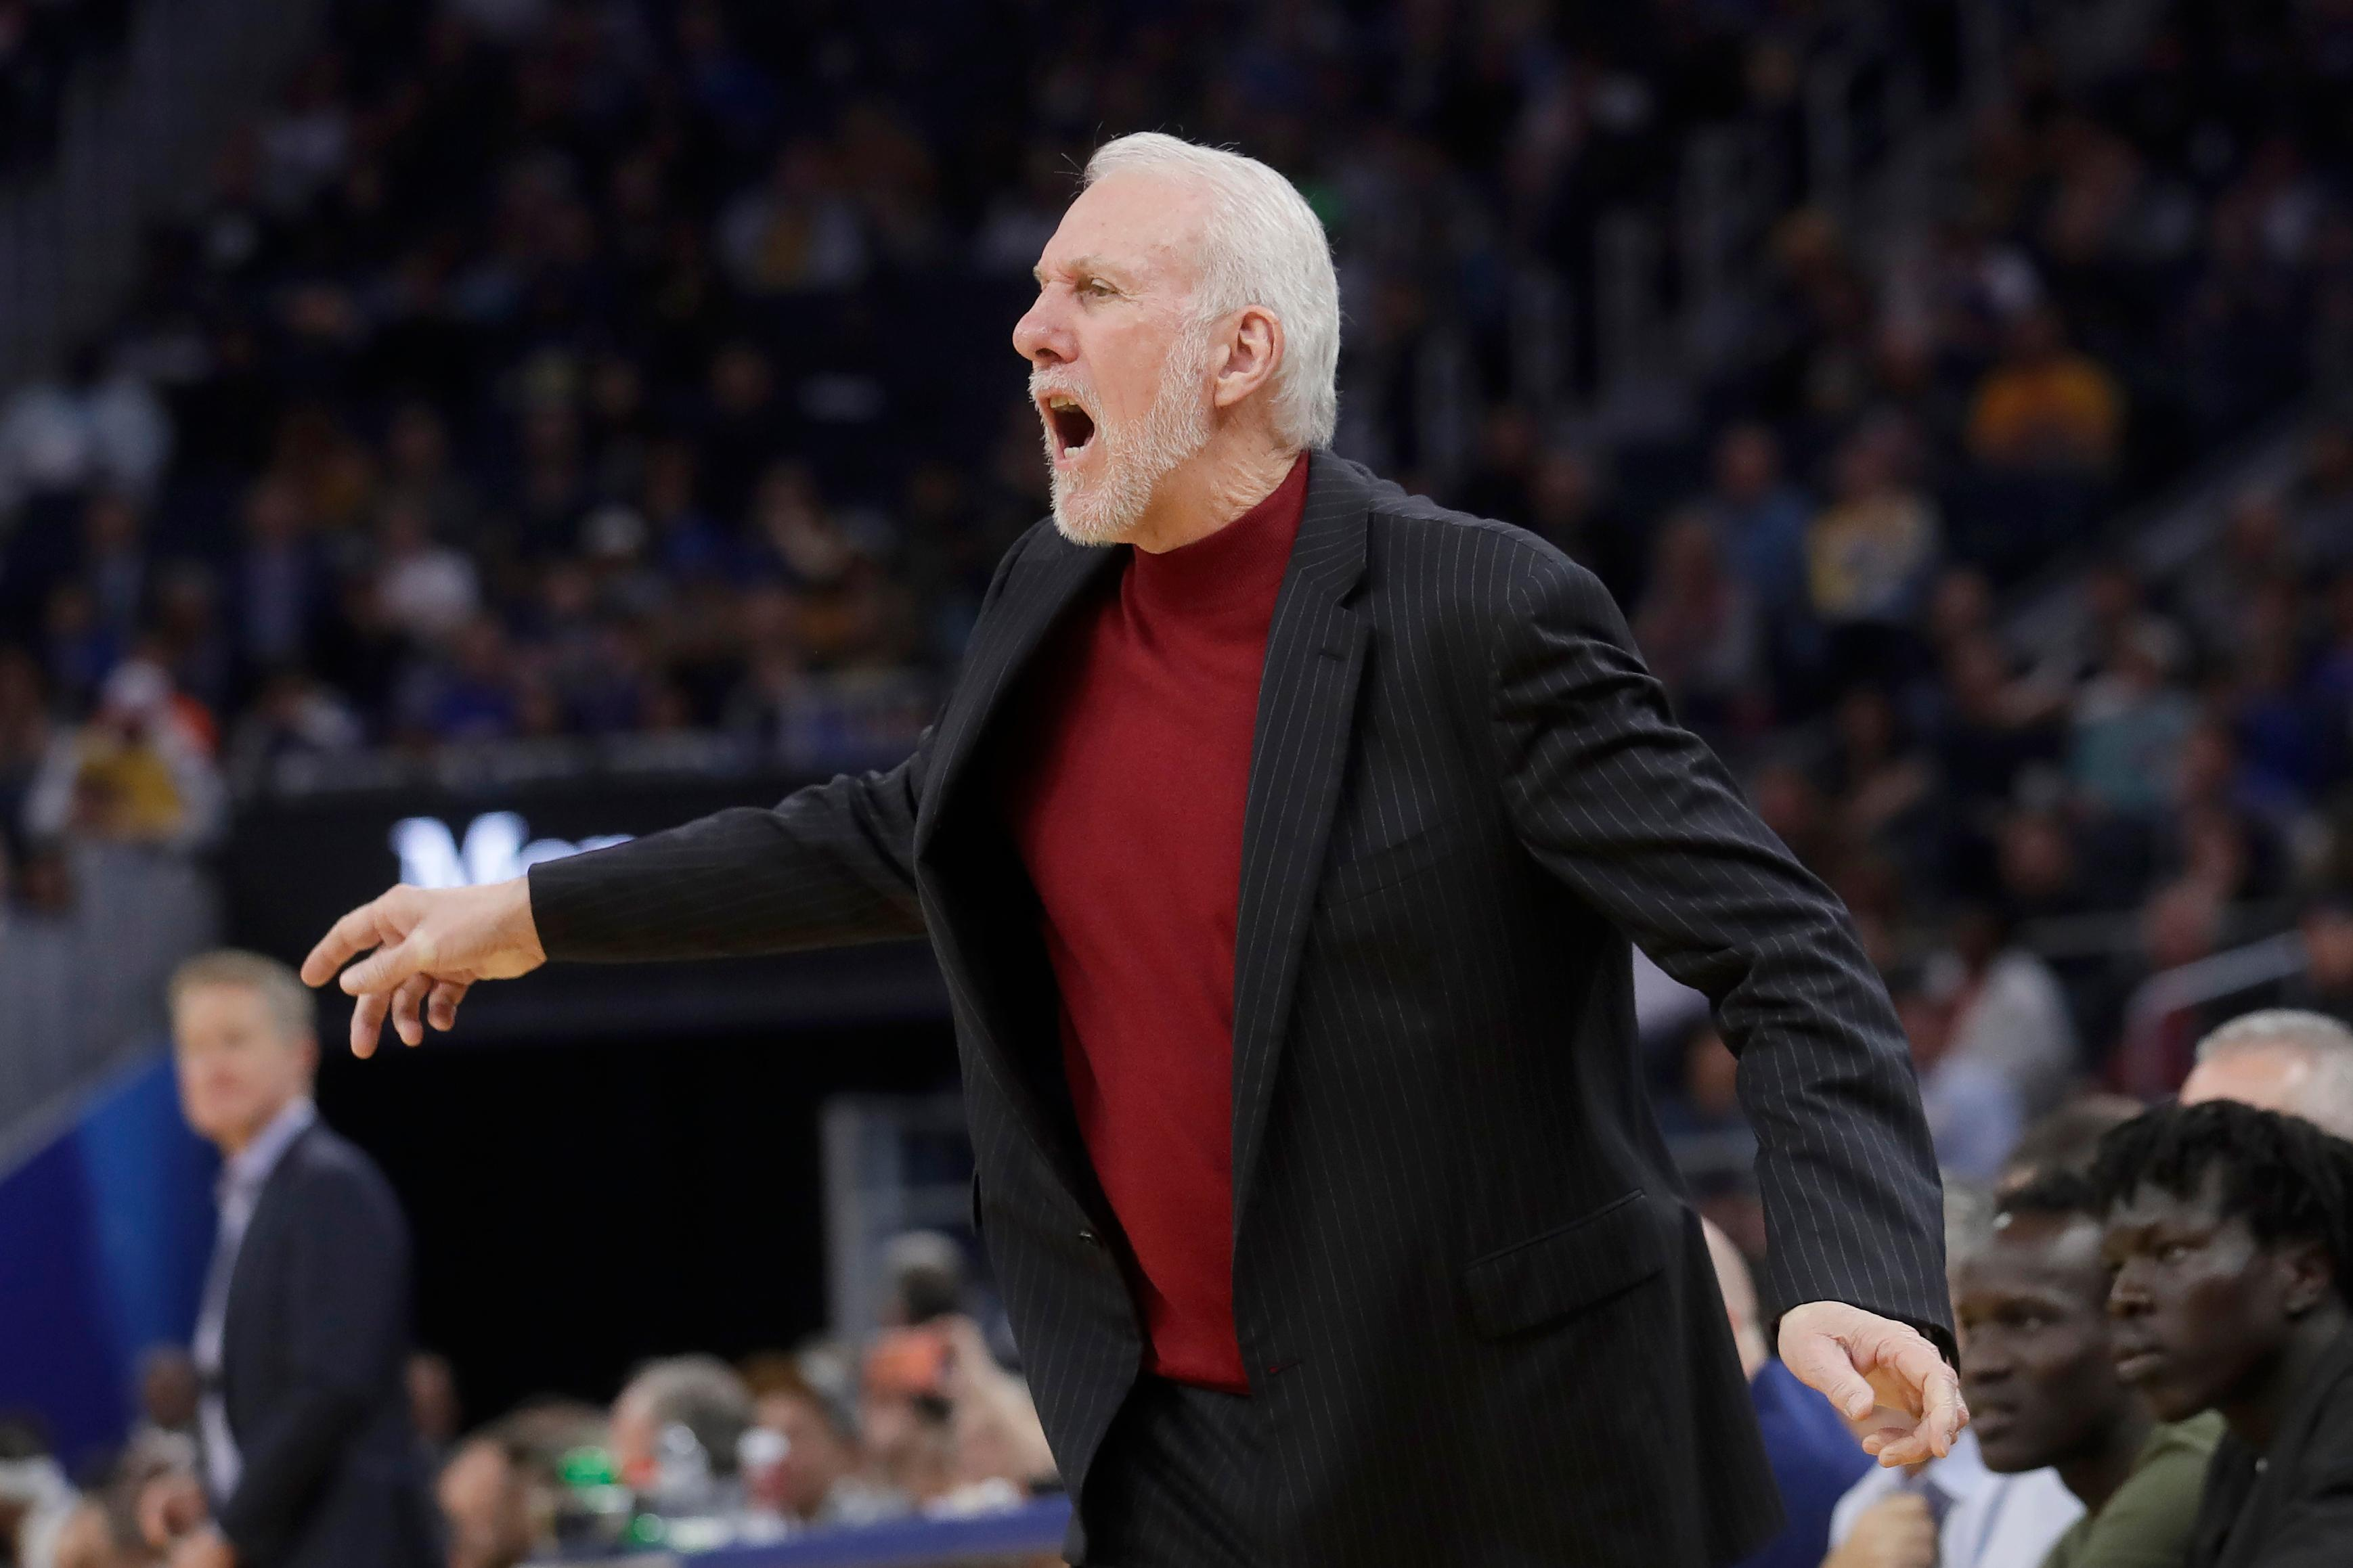 San Antonio Spurs coach Gregg Popovich yells during the second half of the team's NBA basketball game against the Golden State Warriors in San Francisco, Friday, Nov. 1, 2019. (AP Photo/Jeff Chiu)